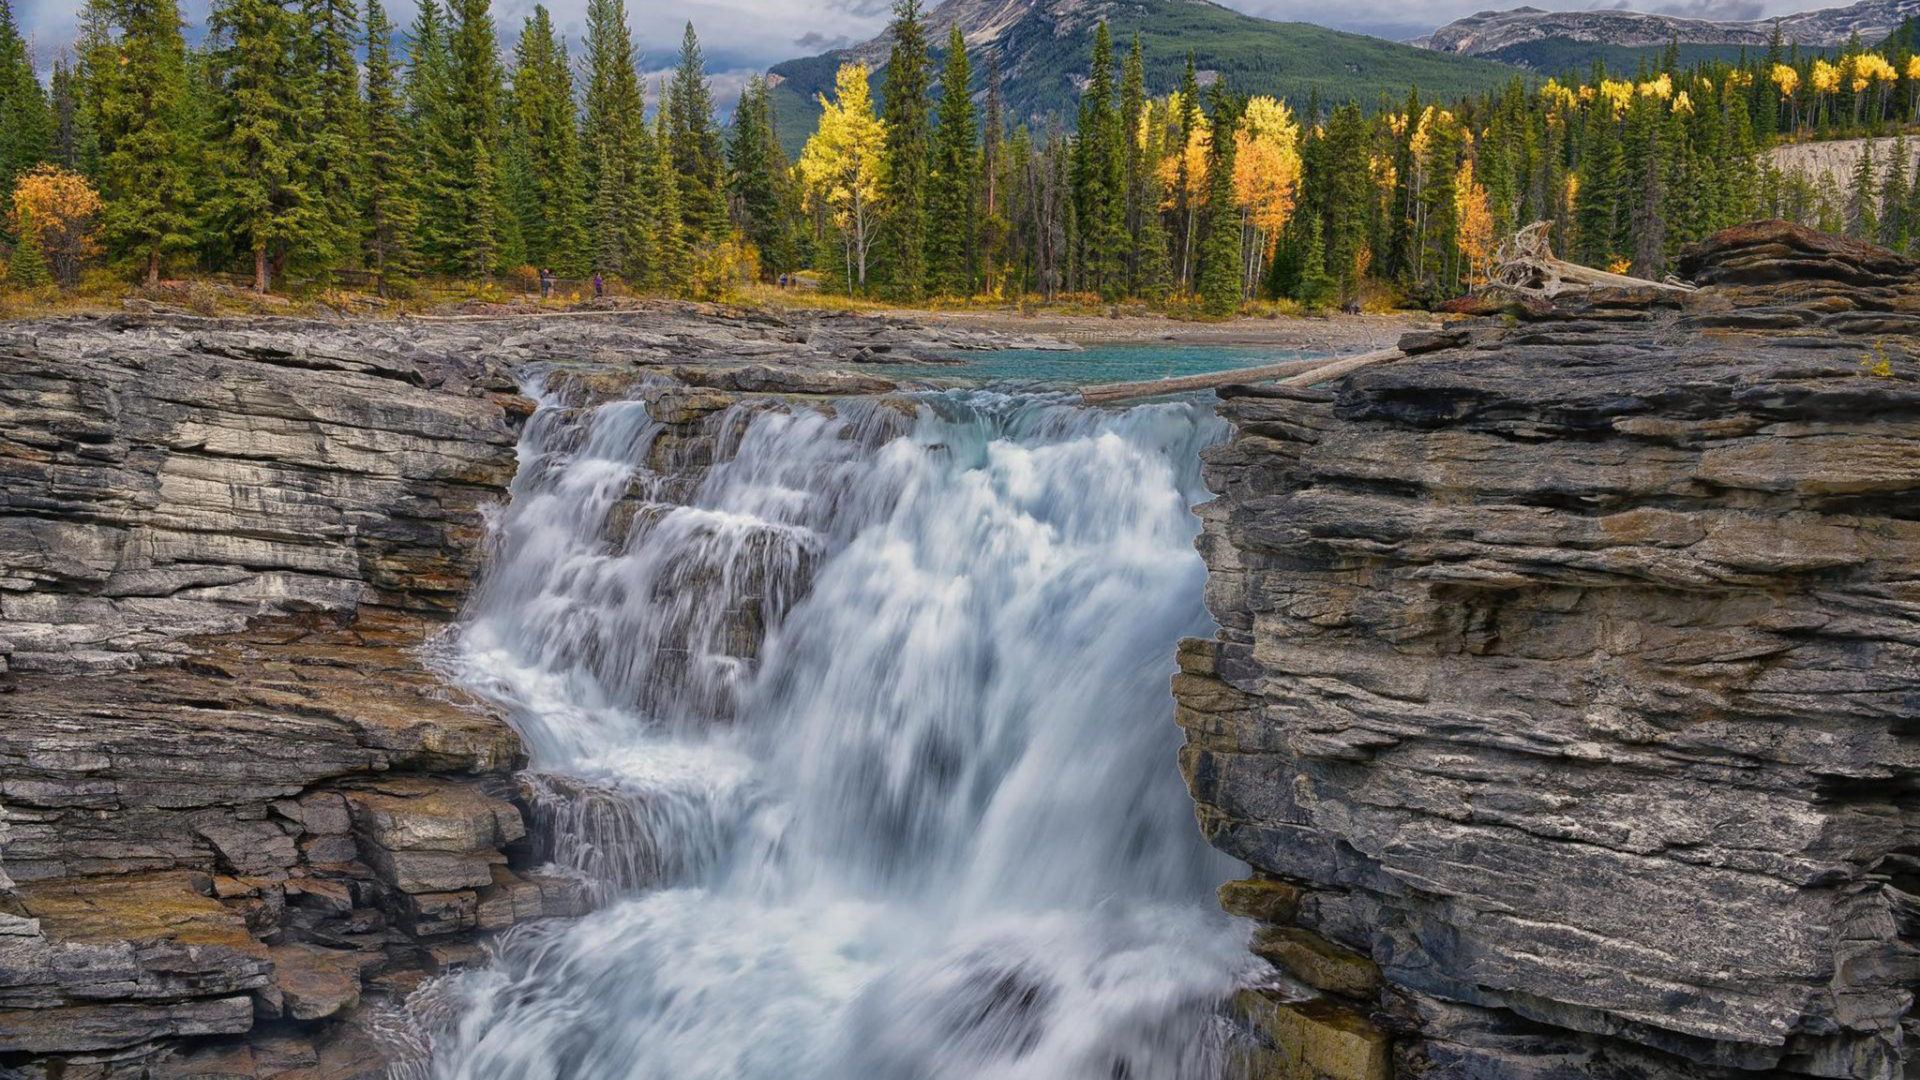 Tazmania Wallpaper Iphone Athabasca Falls In Jasper National Park On The Upper